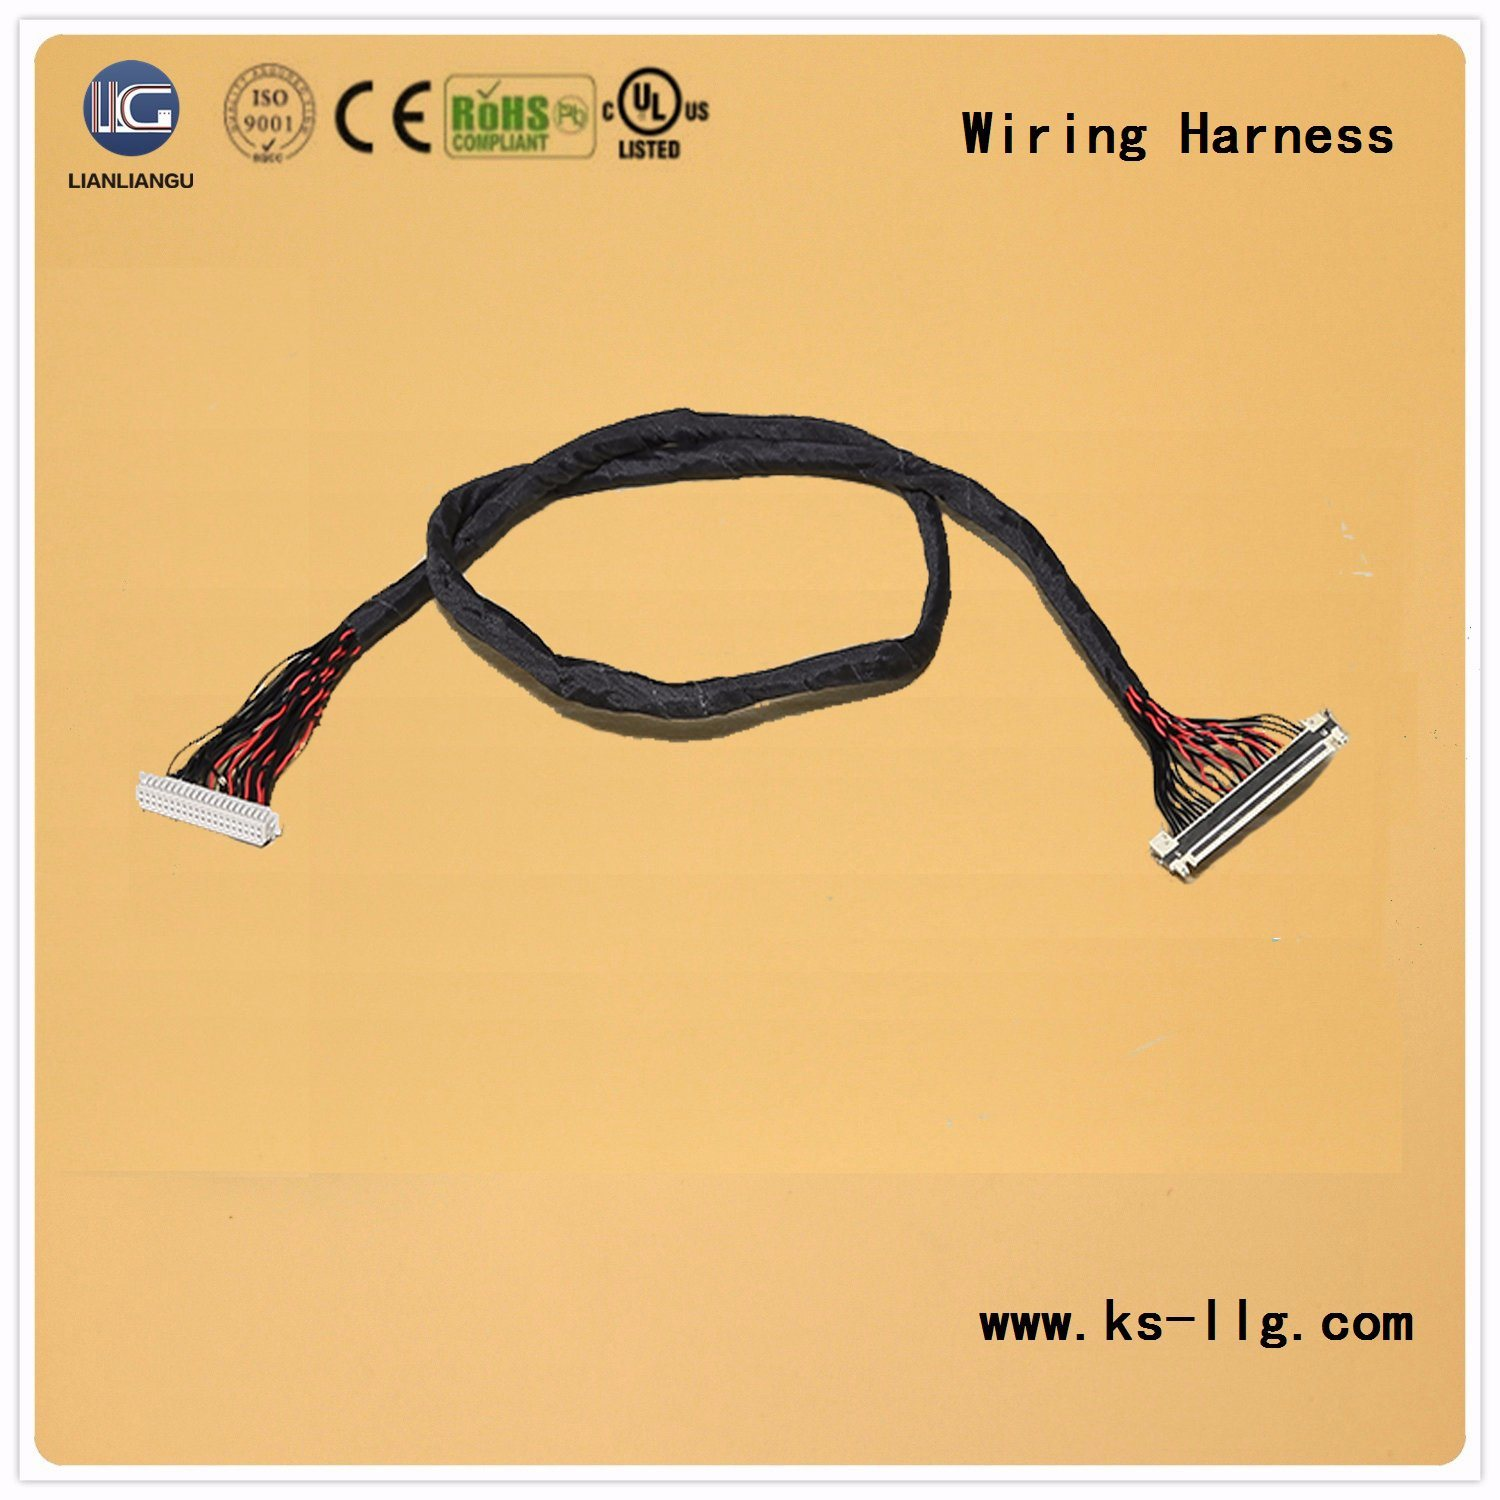 Oem Wiring Harness Connectors Quadlock China Connector Cable For Image Measuring Instrument Odm 1500x1500